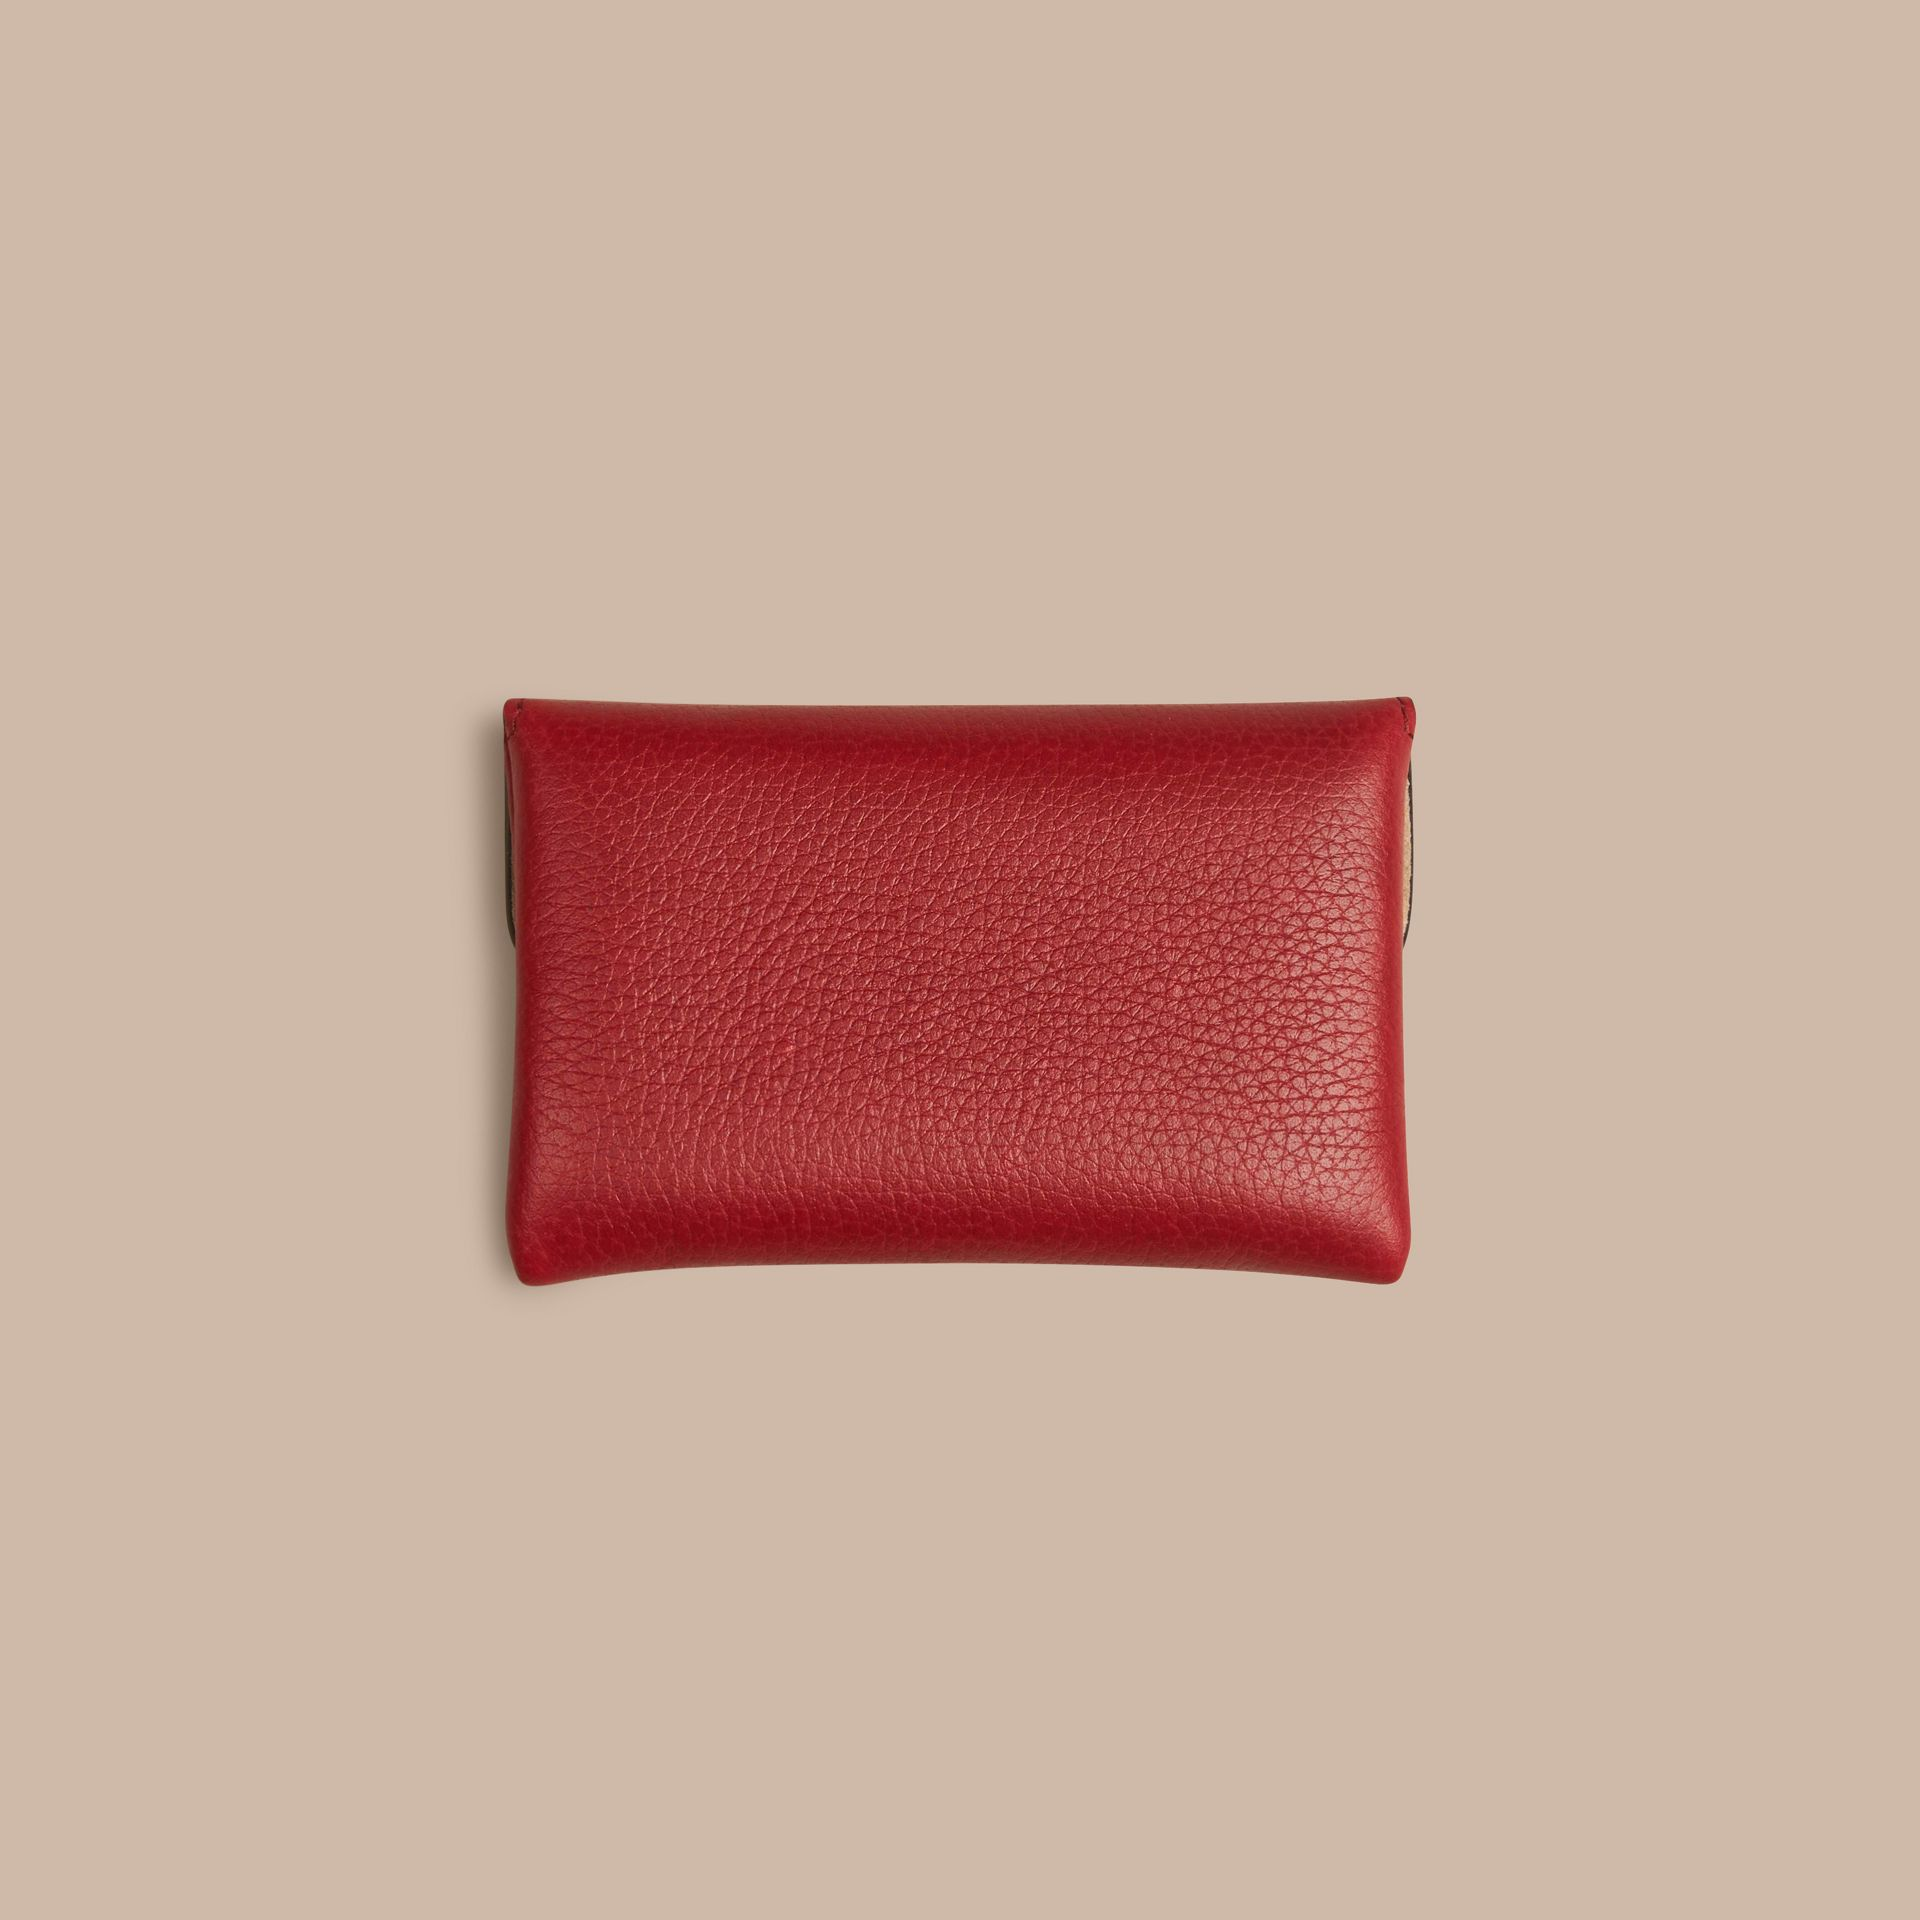 Grainy Leather Playing Card Case in Parade Red - gallery image 4